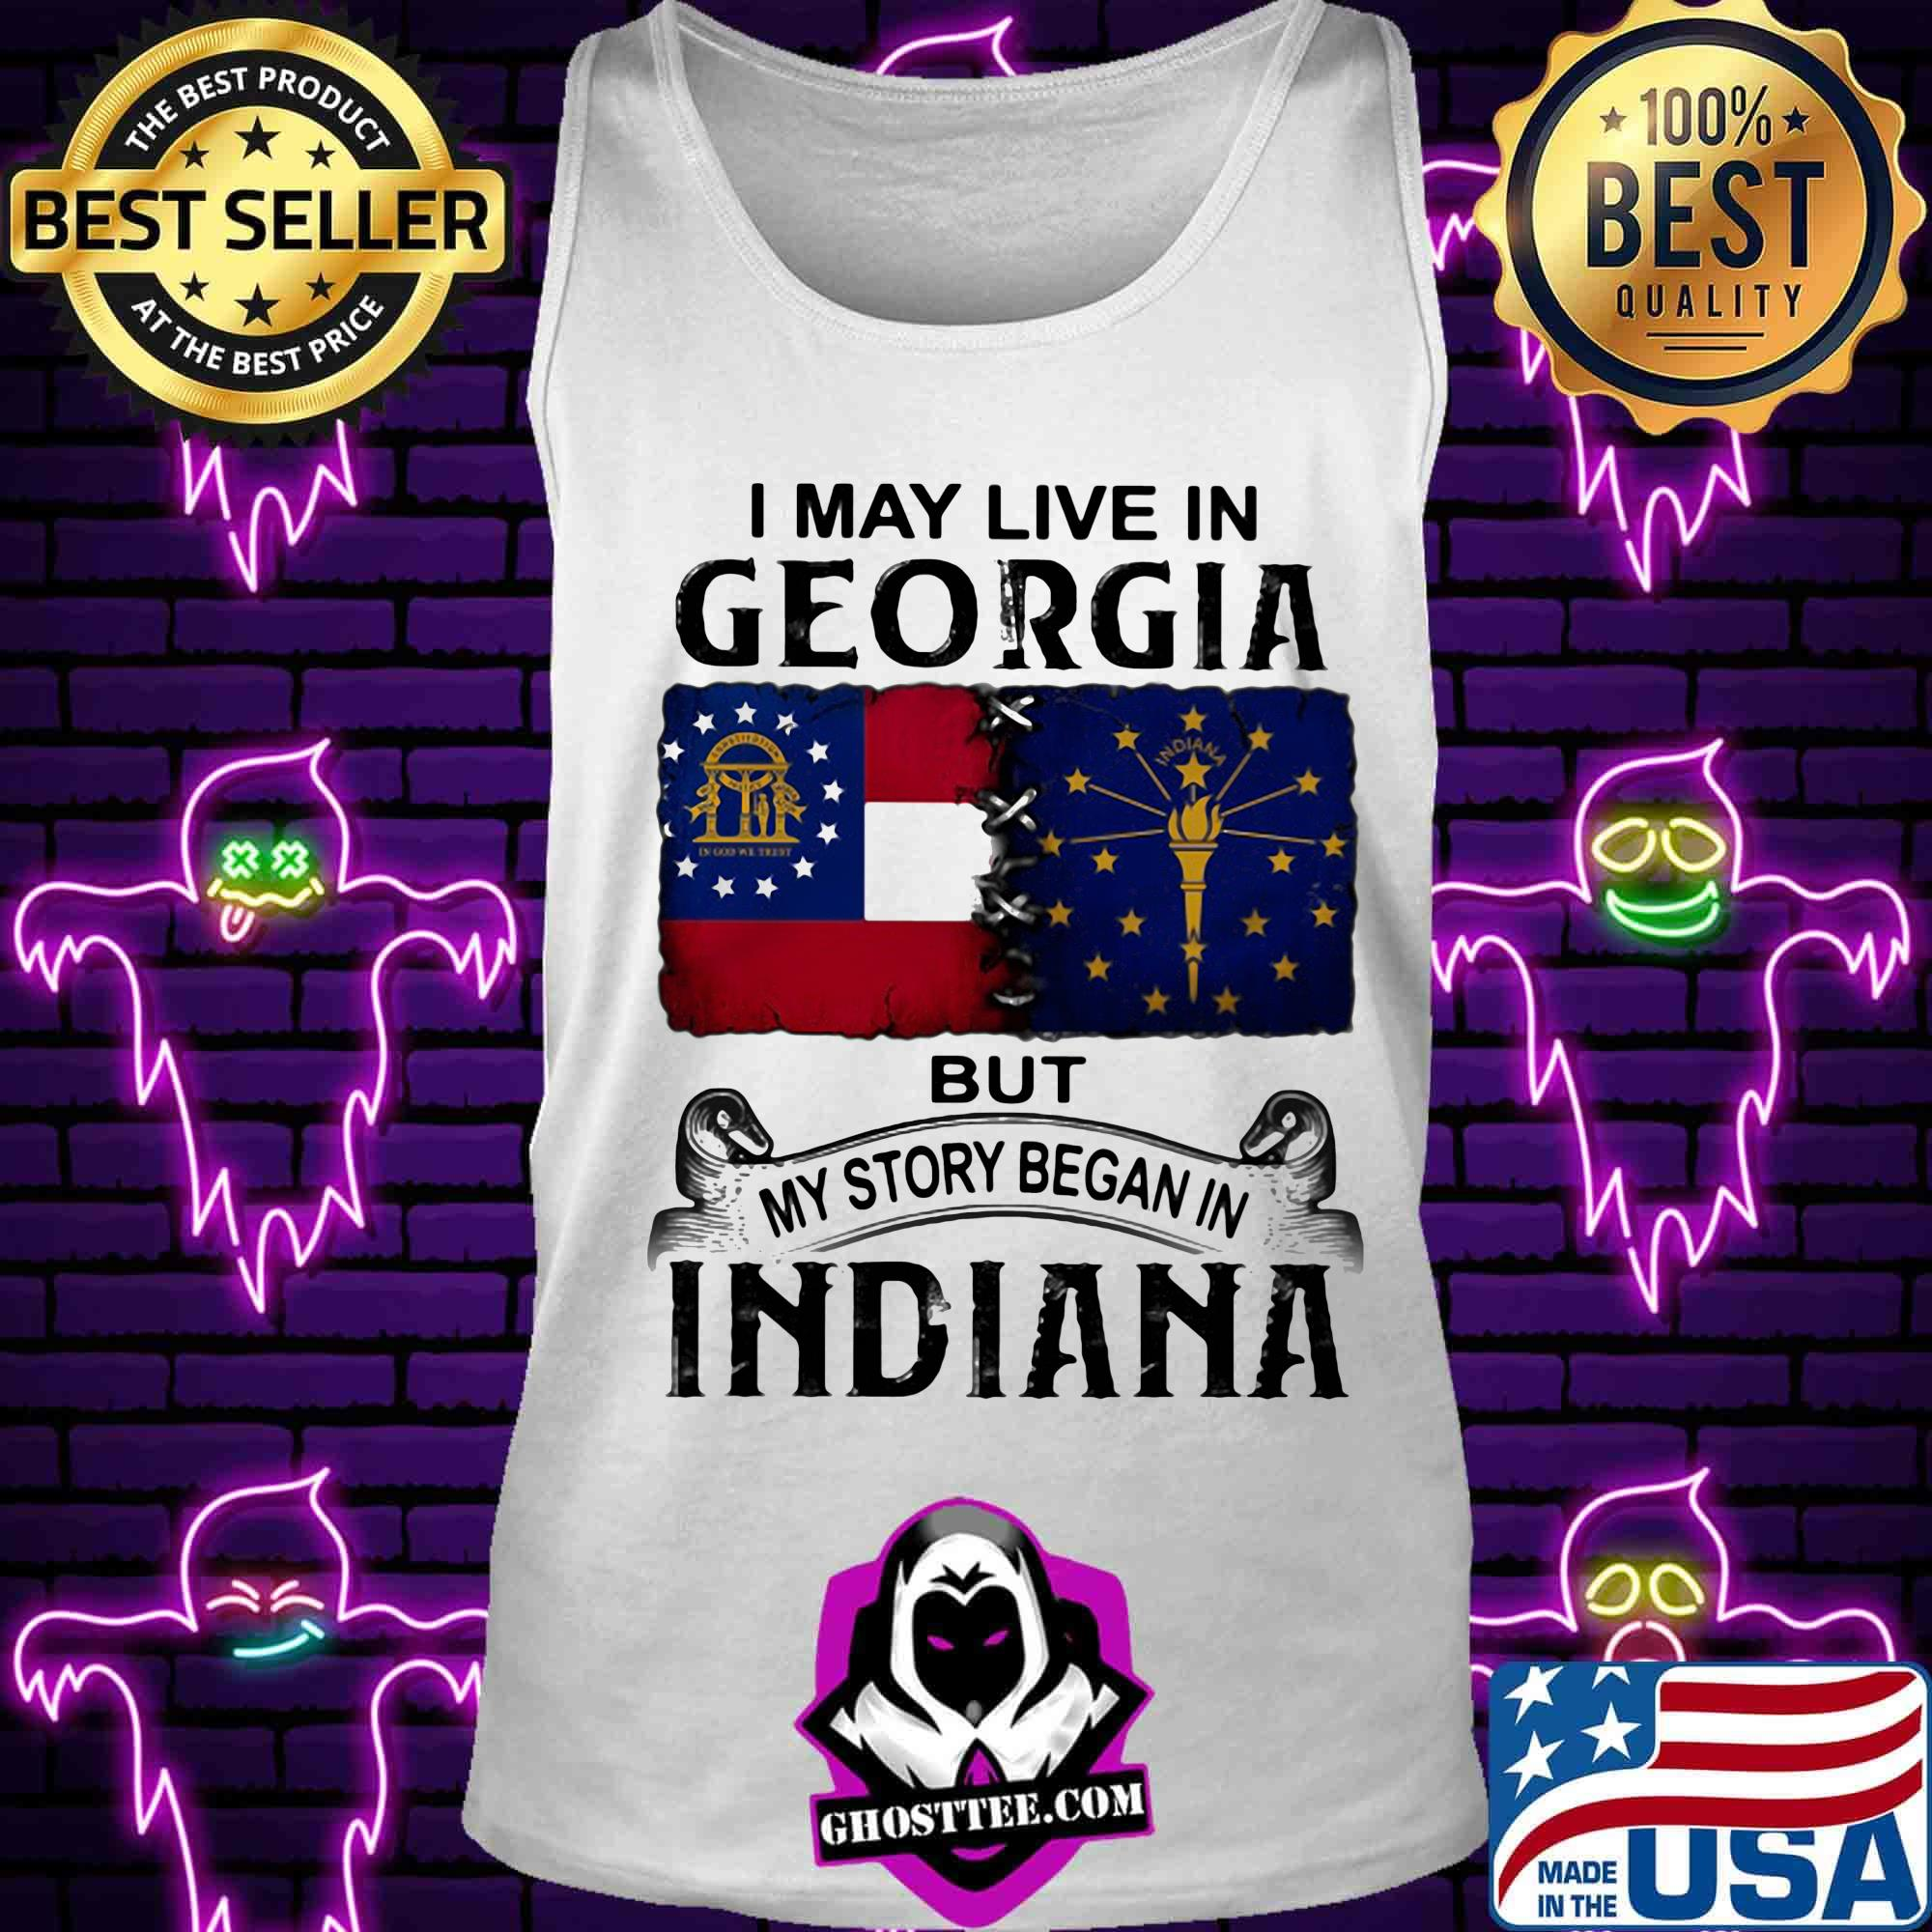 I may live in Georgia but my story began in Indiana shirt